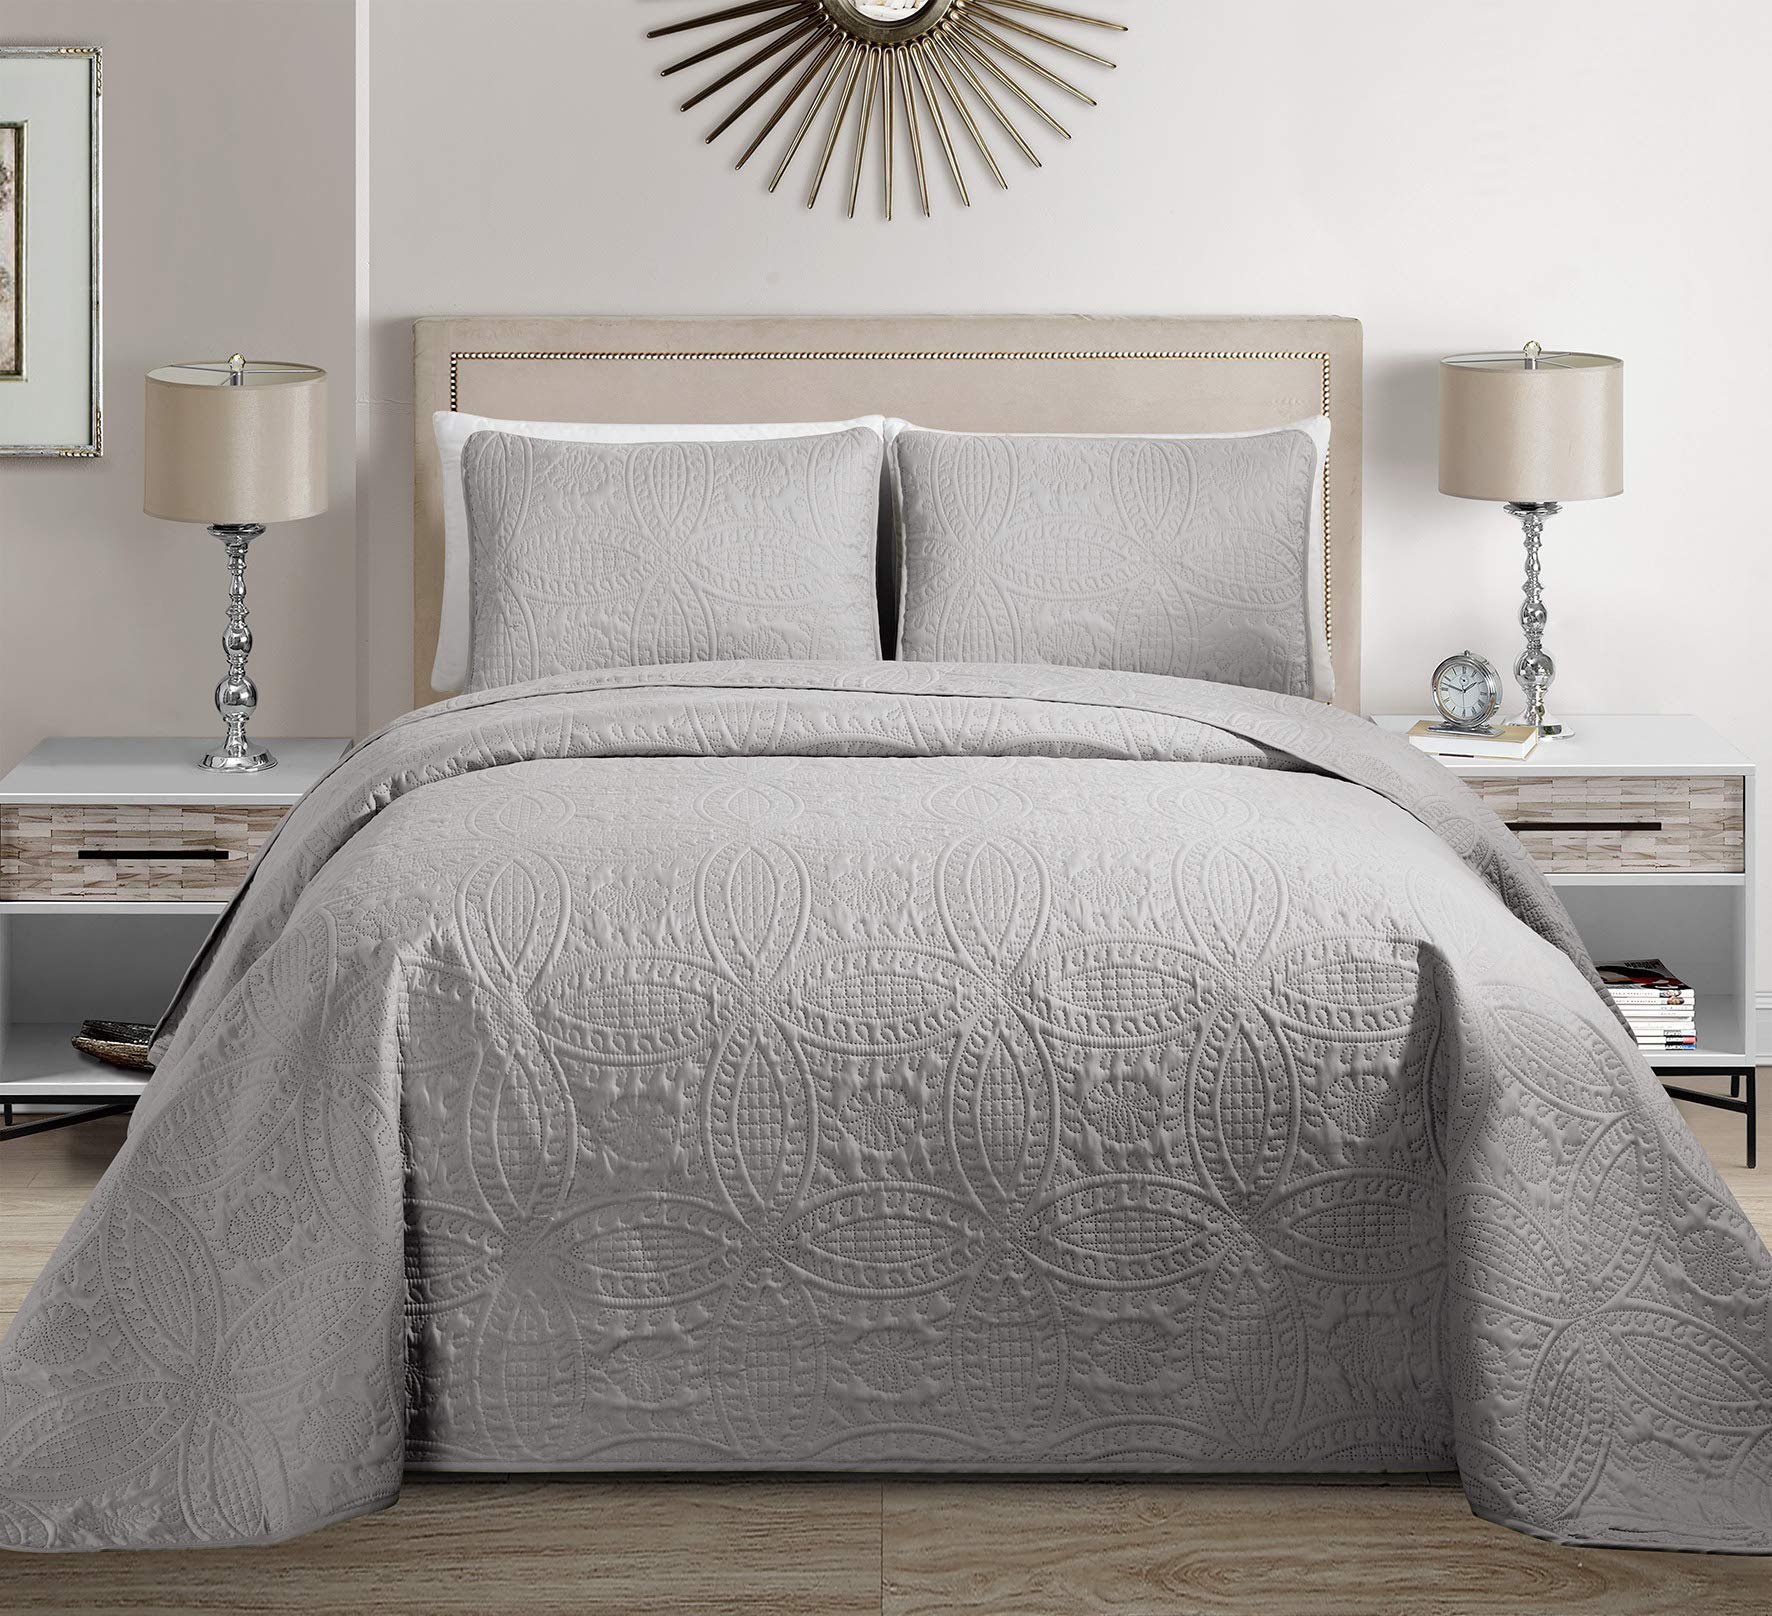 Linen Plus King/California King 3pc Over Size Embossed Coverlet Bedspread Set Silver/Light Grey New by Linen Plus